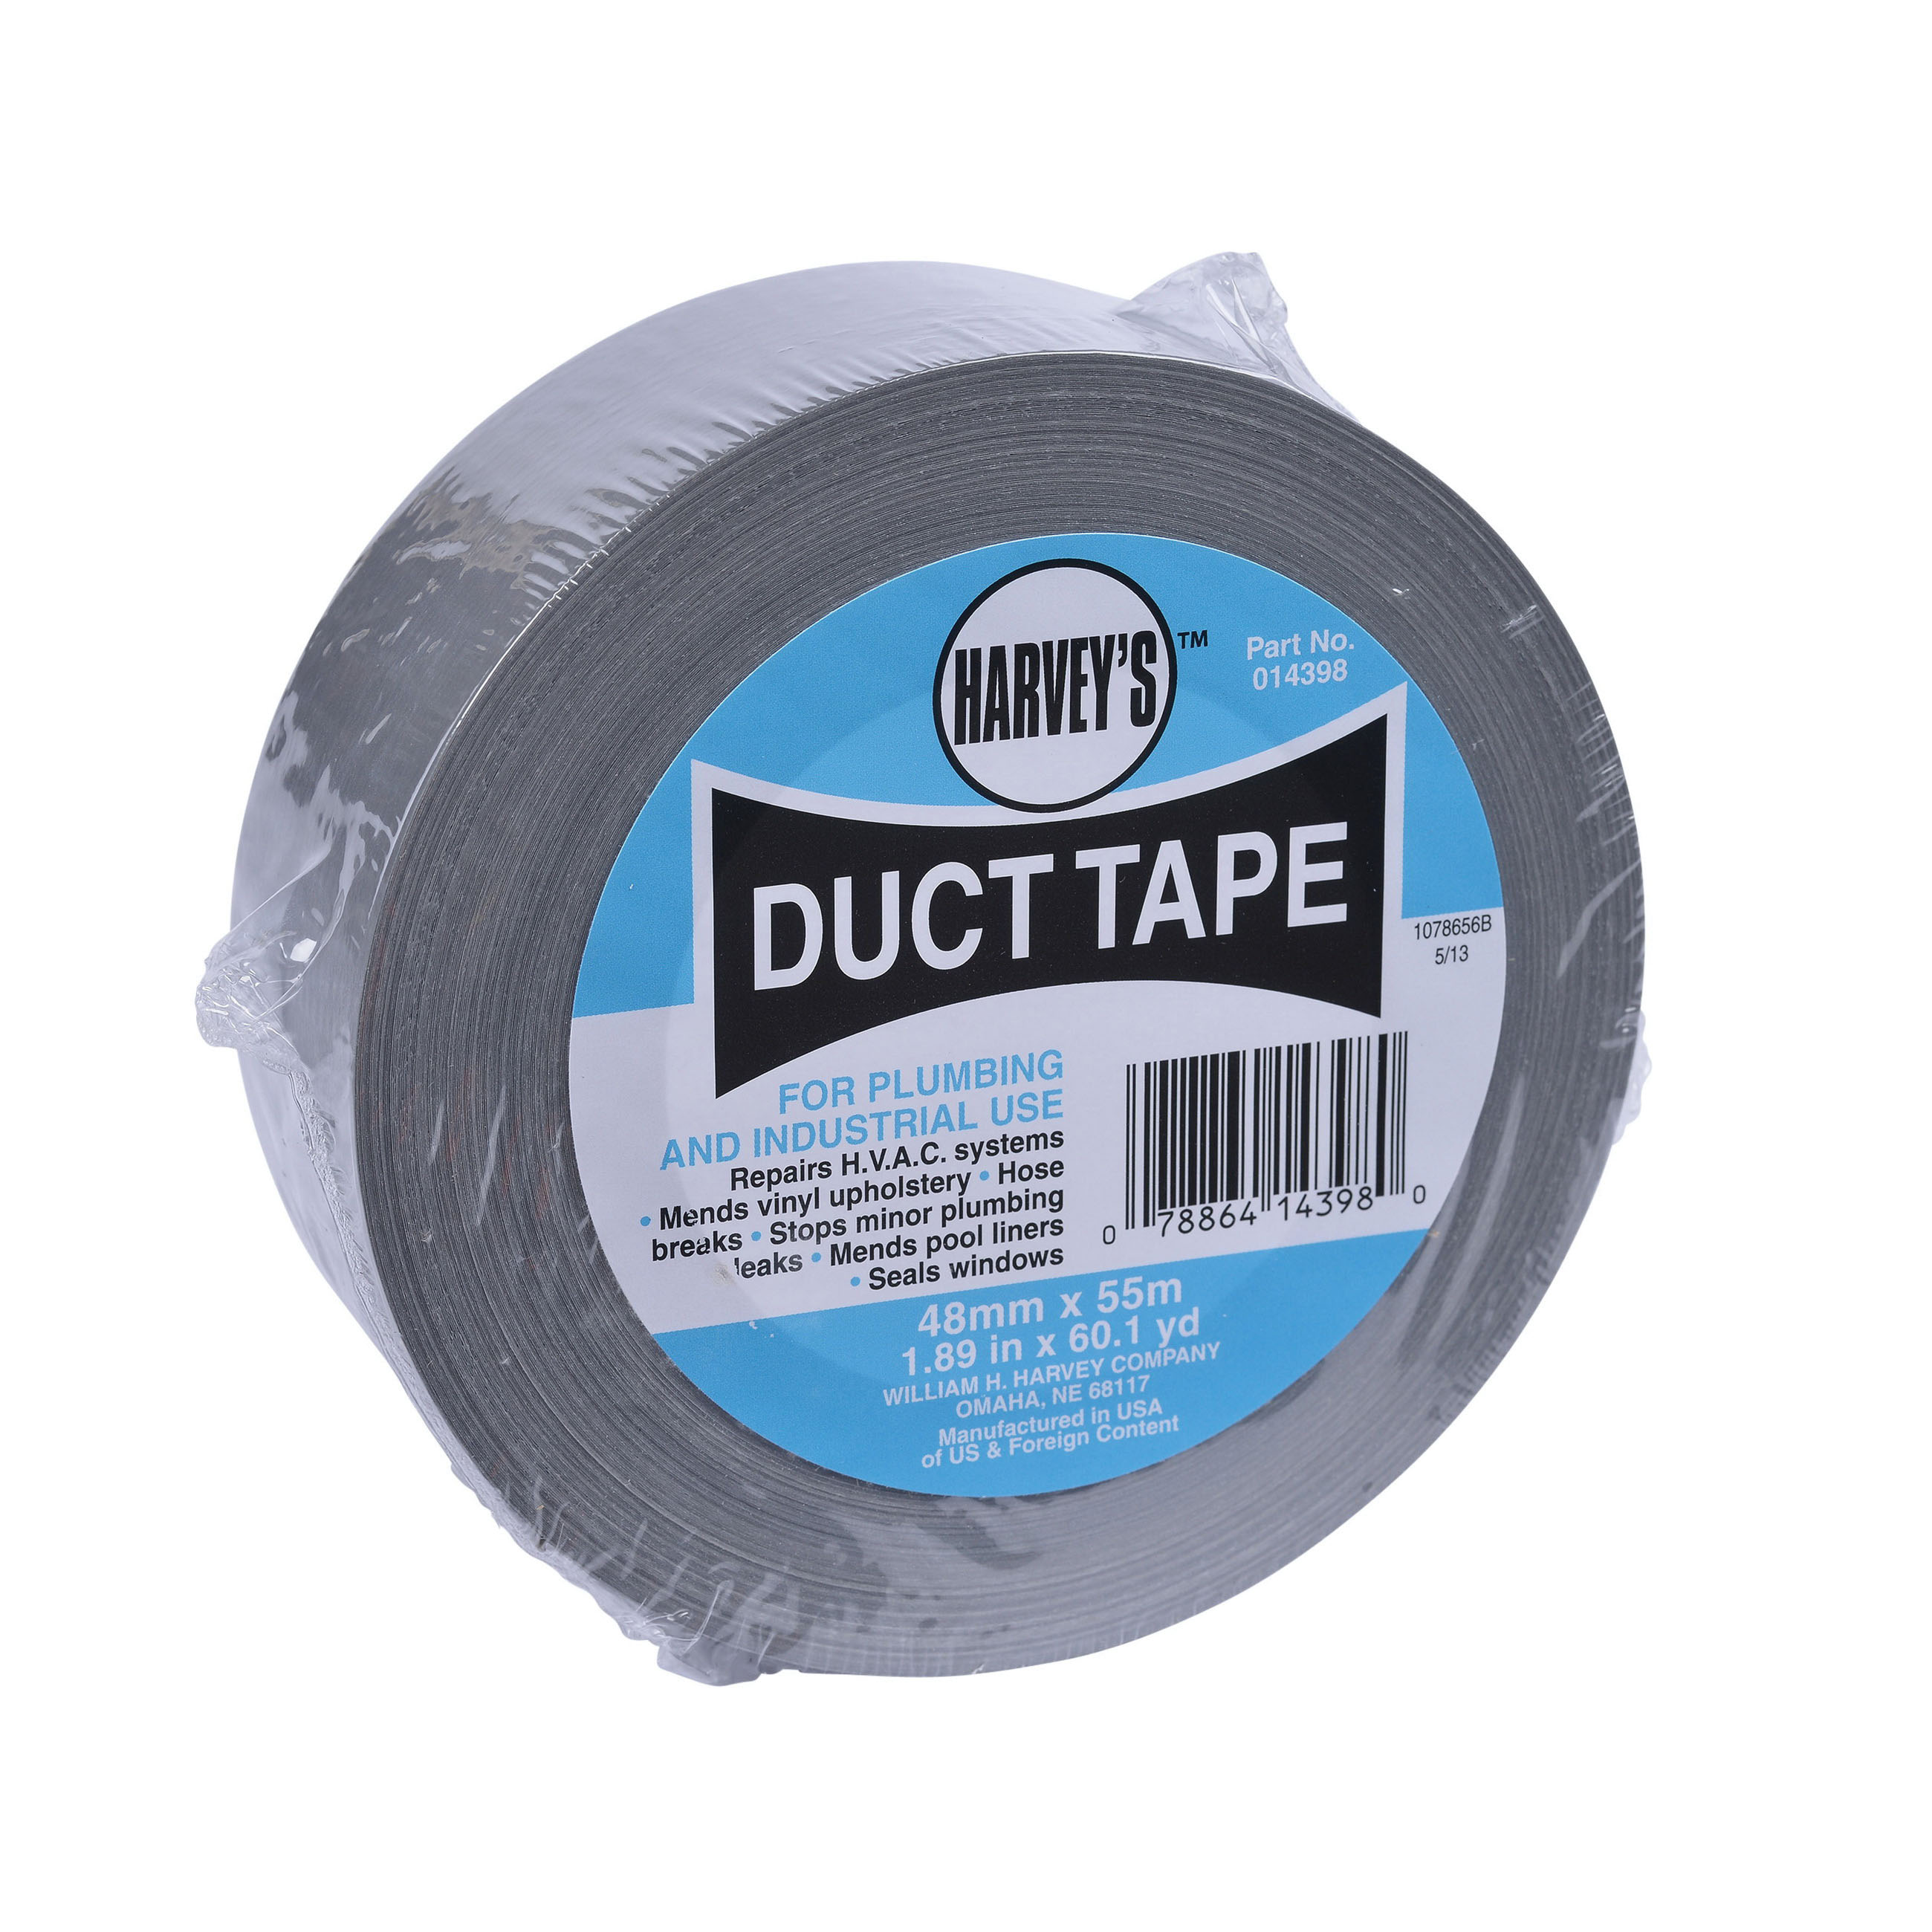 Polycloth Duct Tape, 2 in x 180 ft, Silver